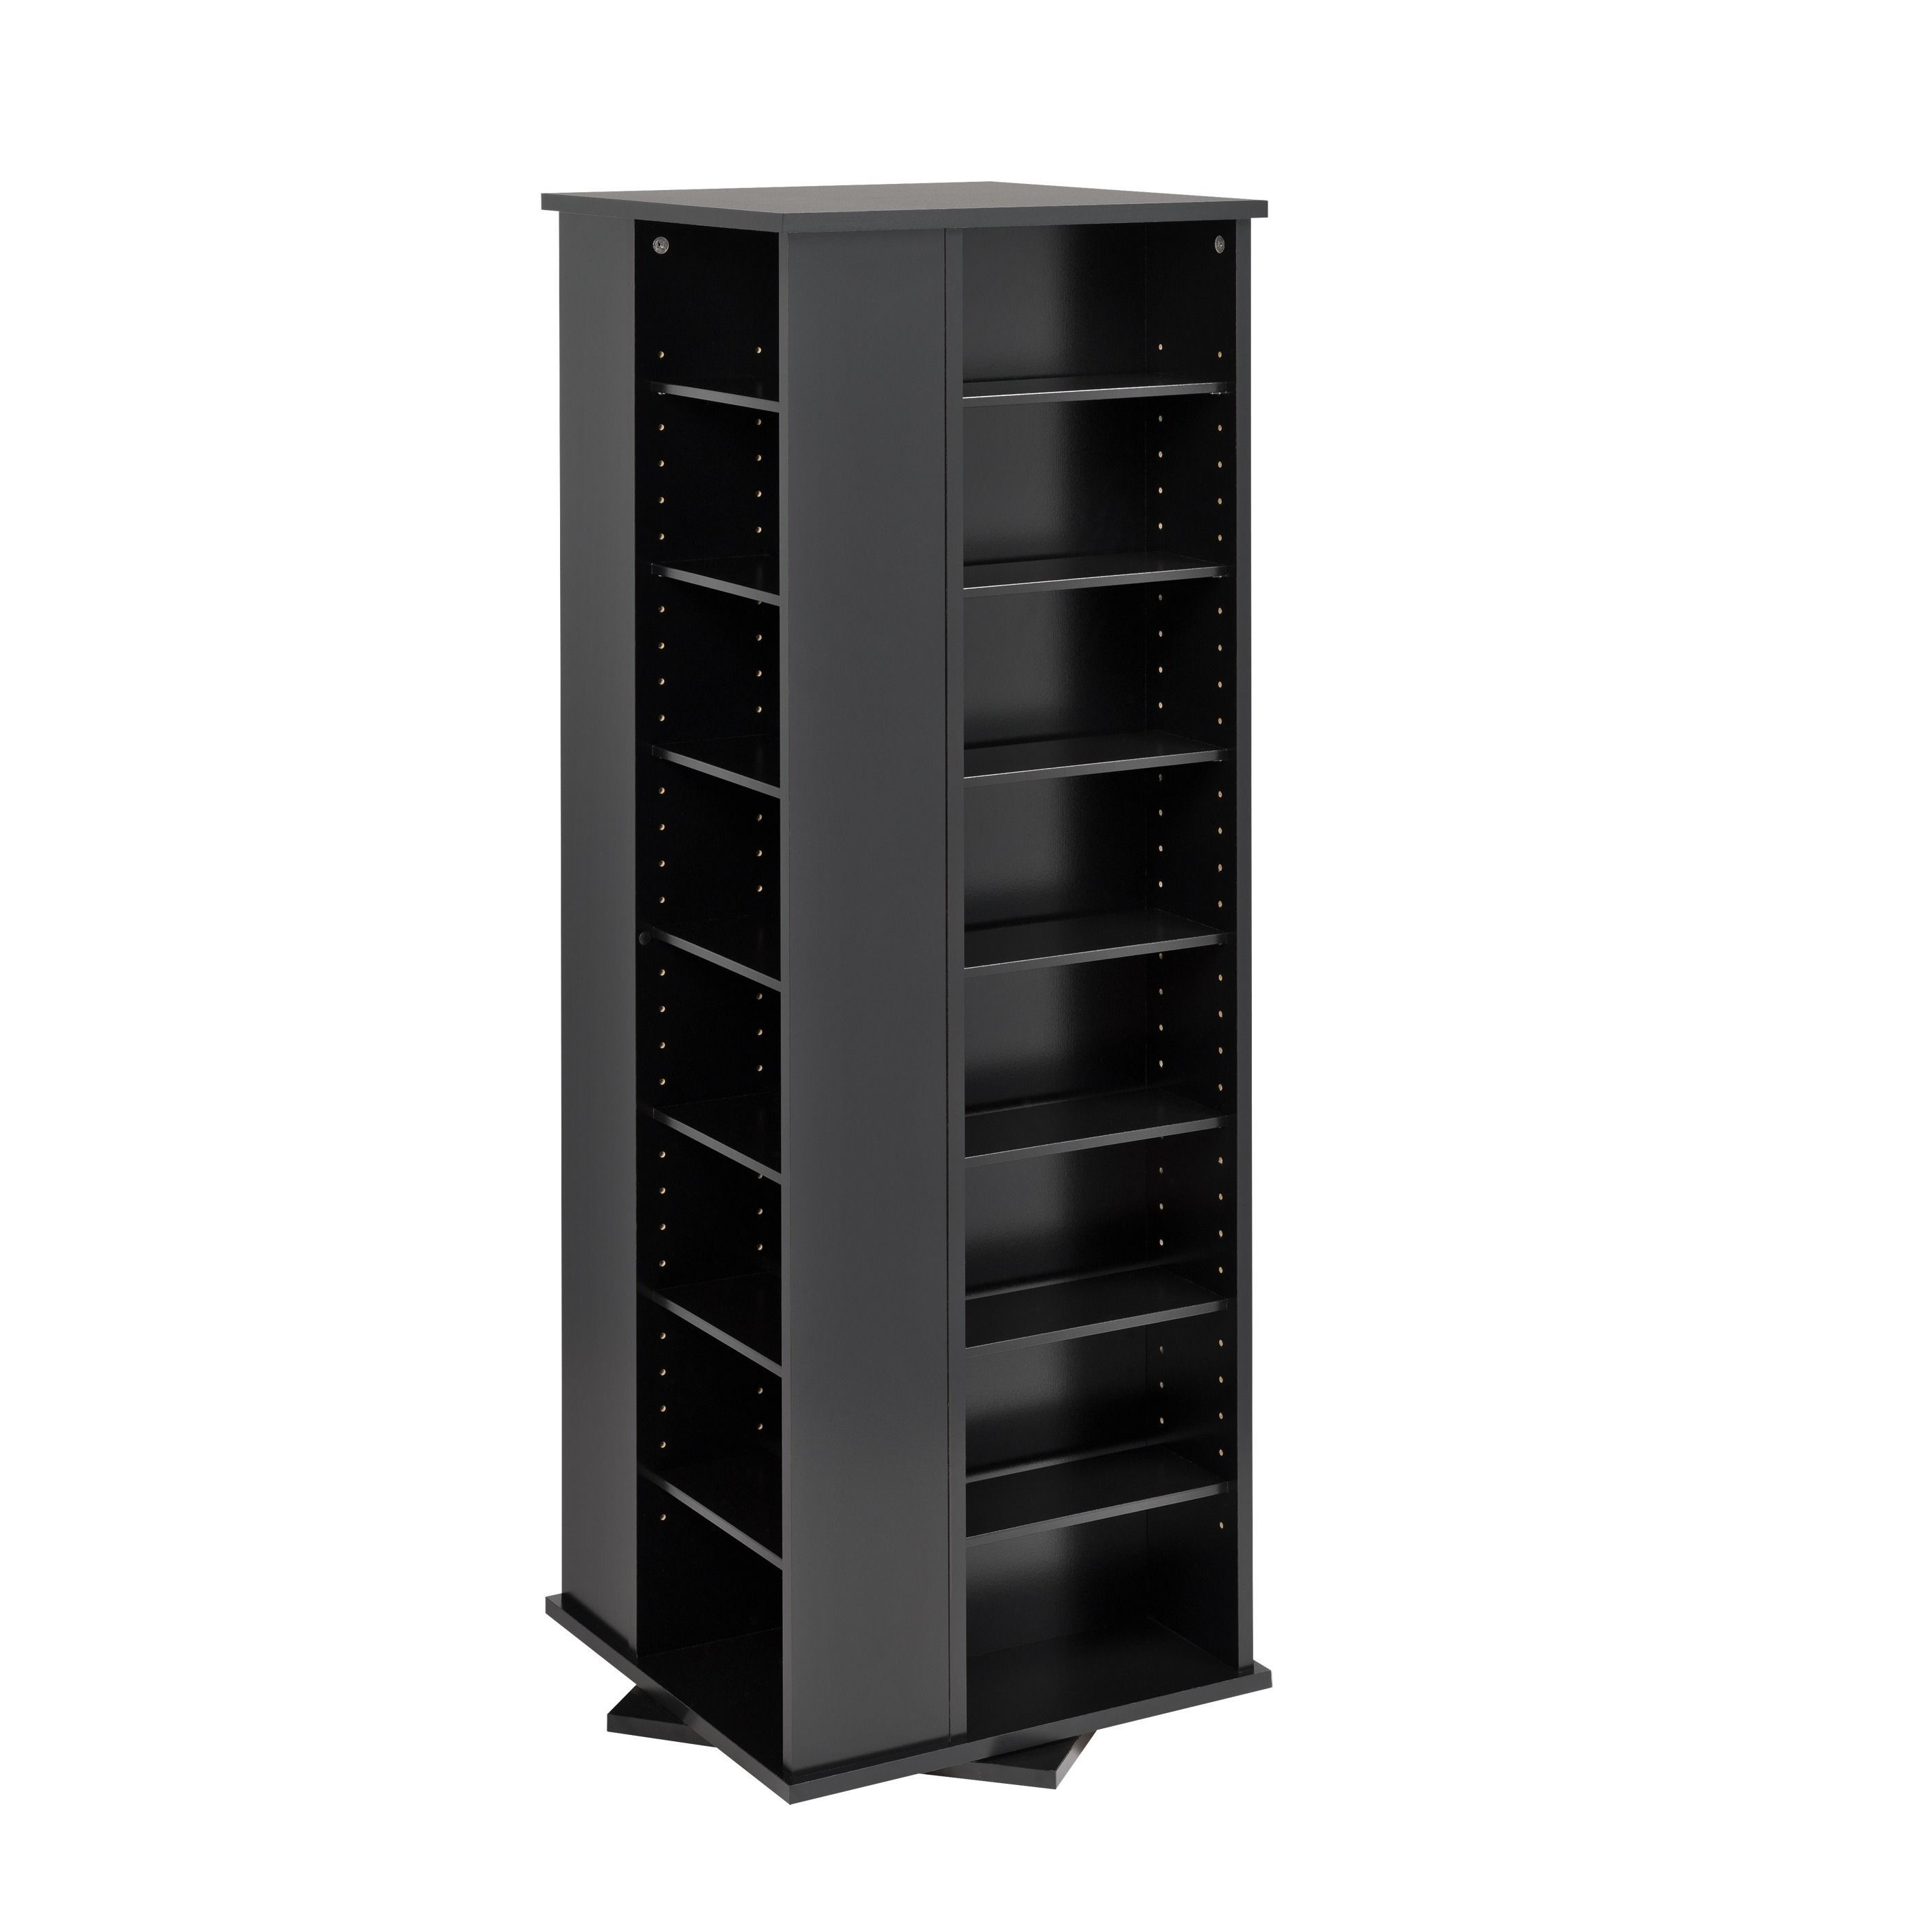 Prepac Spinning Media Storage Tower (Black)